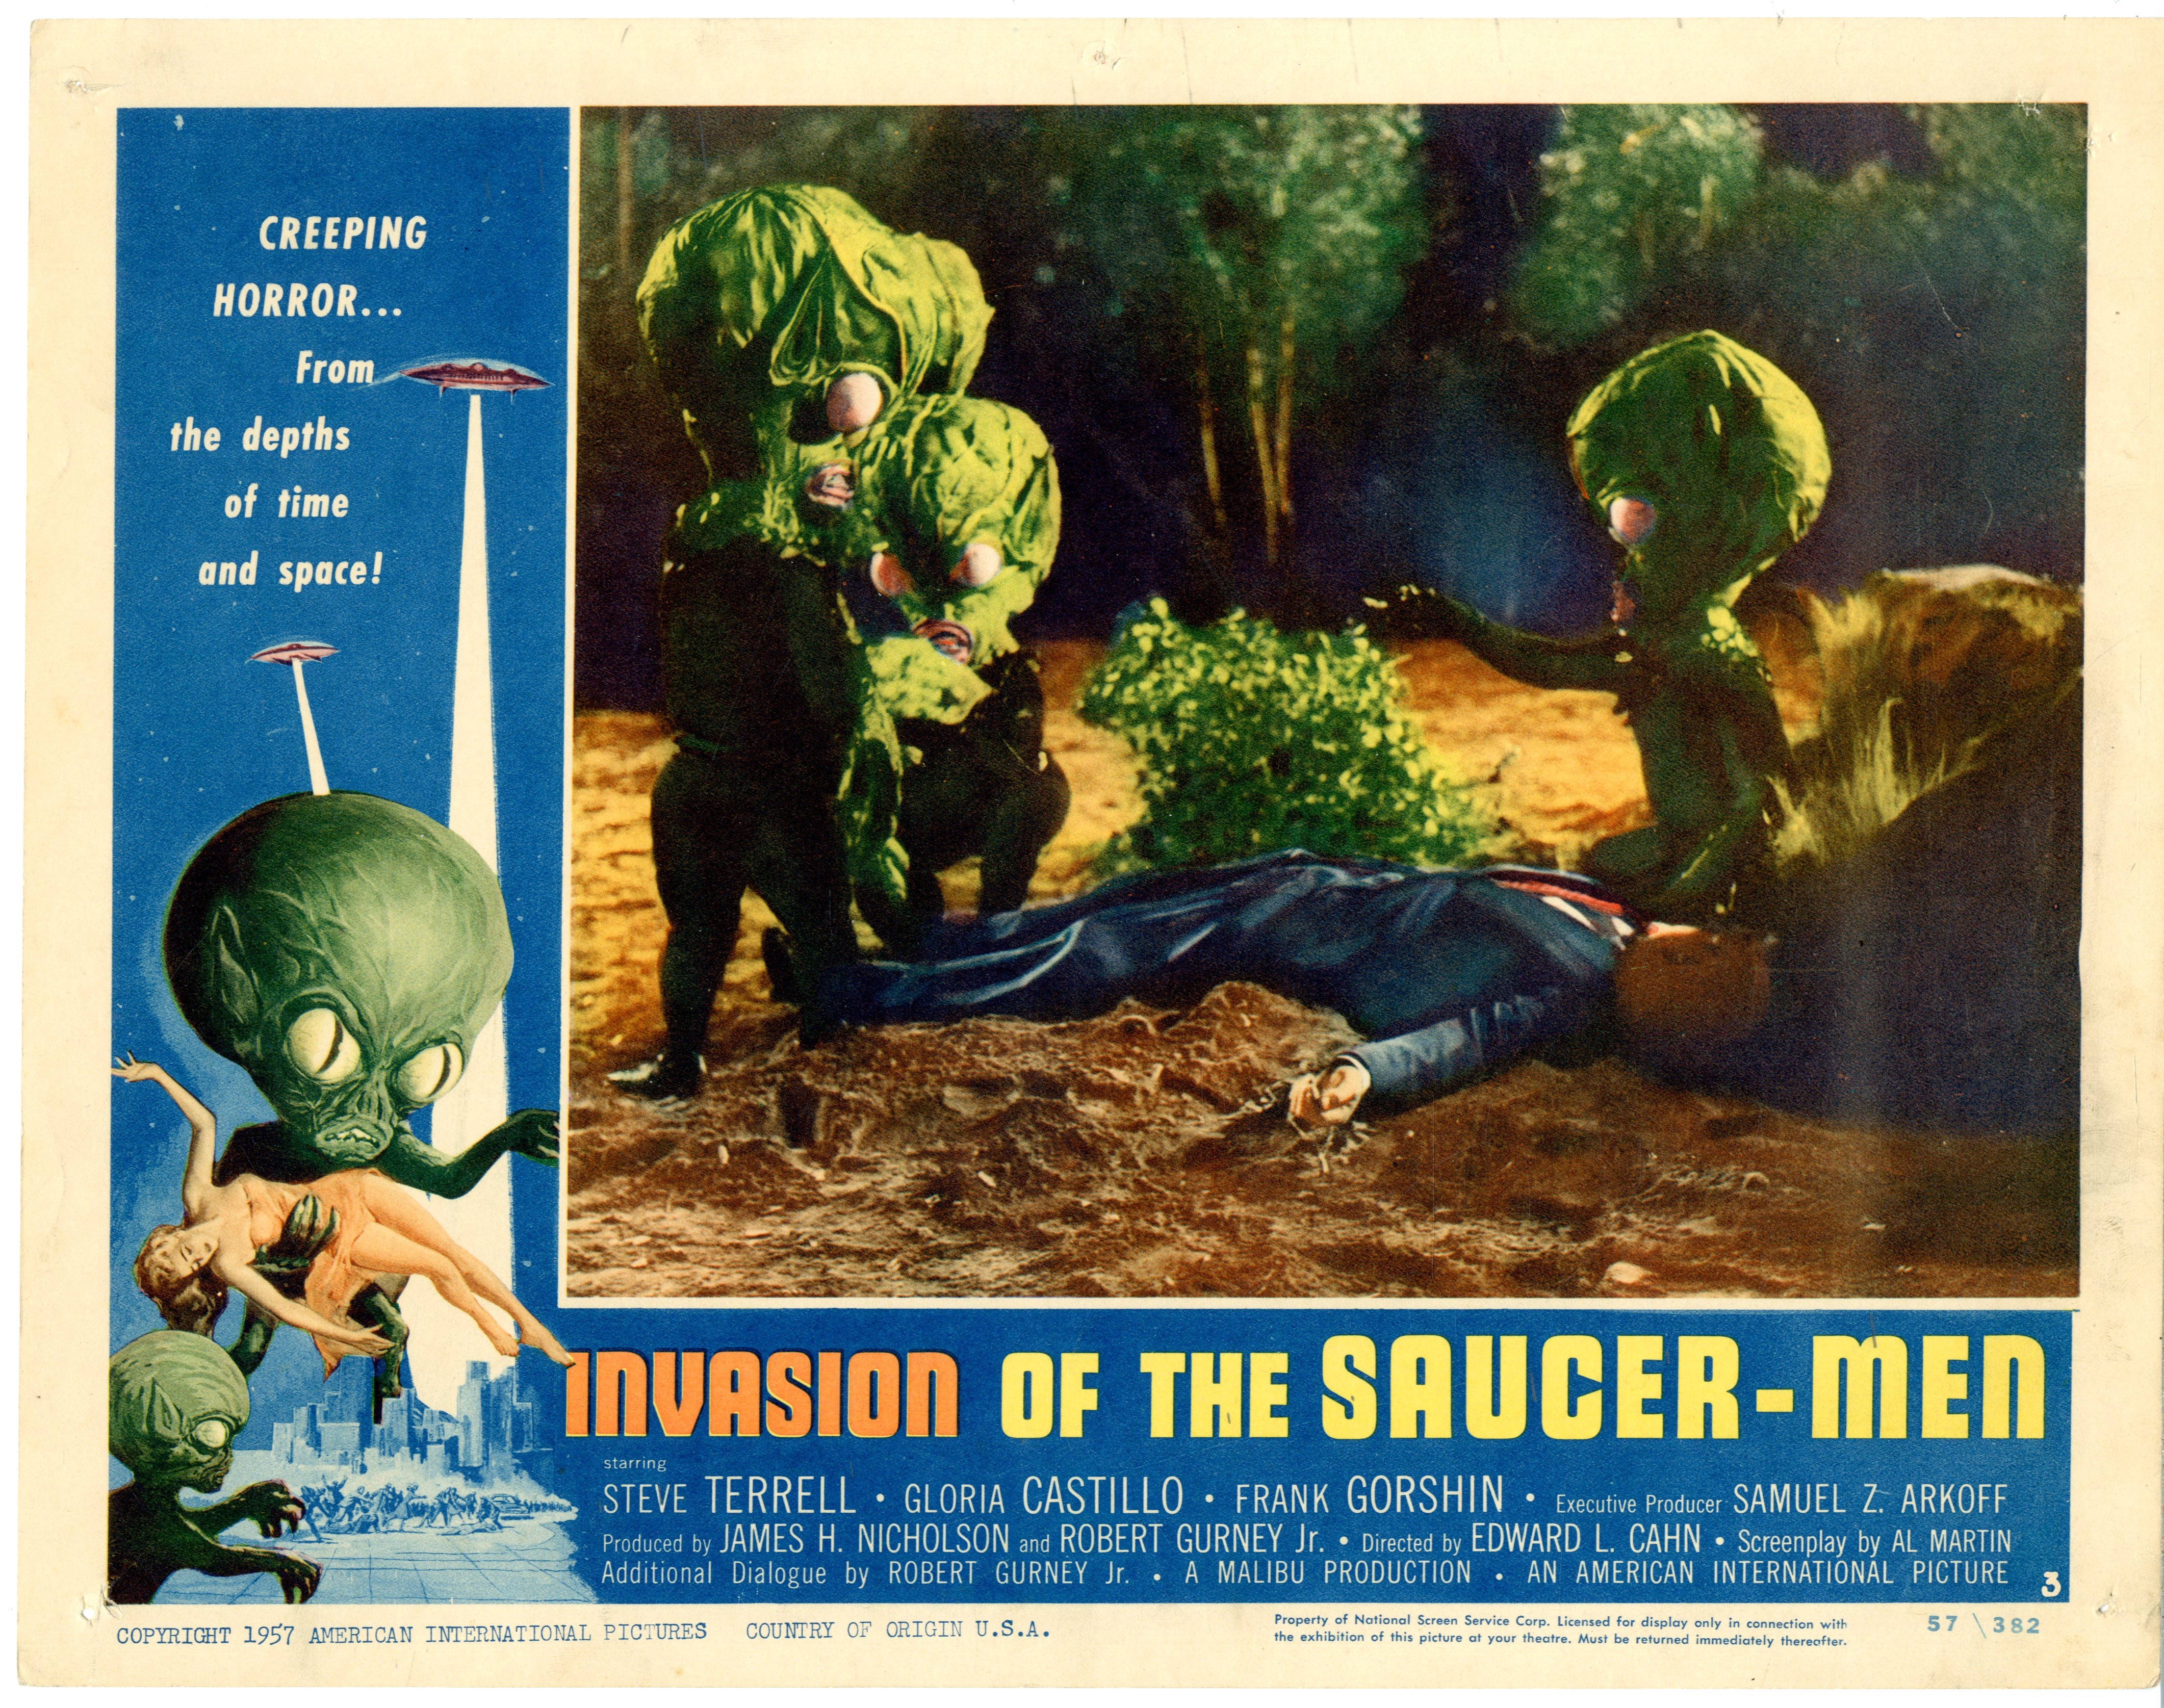 Invasion Of The Saucer-men 1957 - 22005